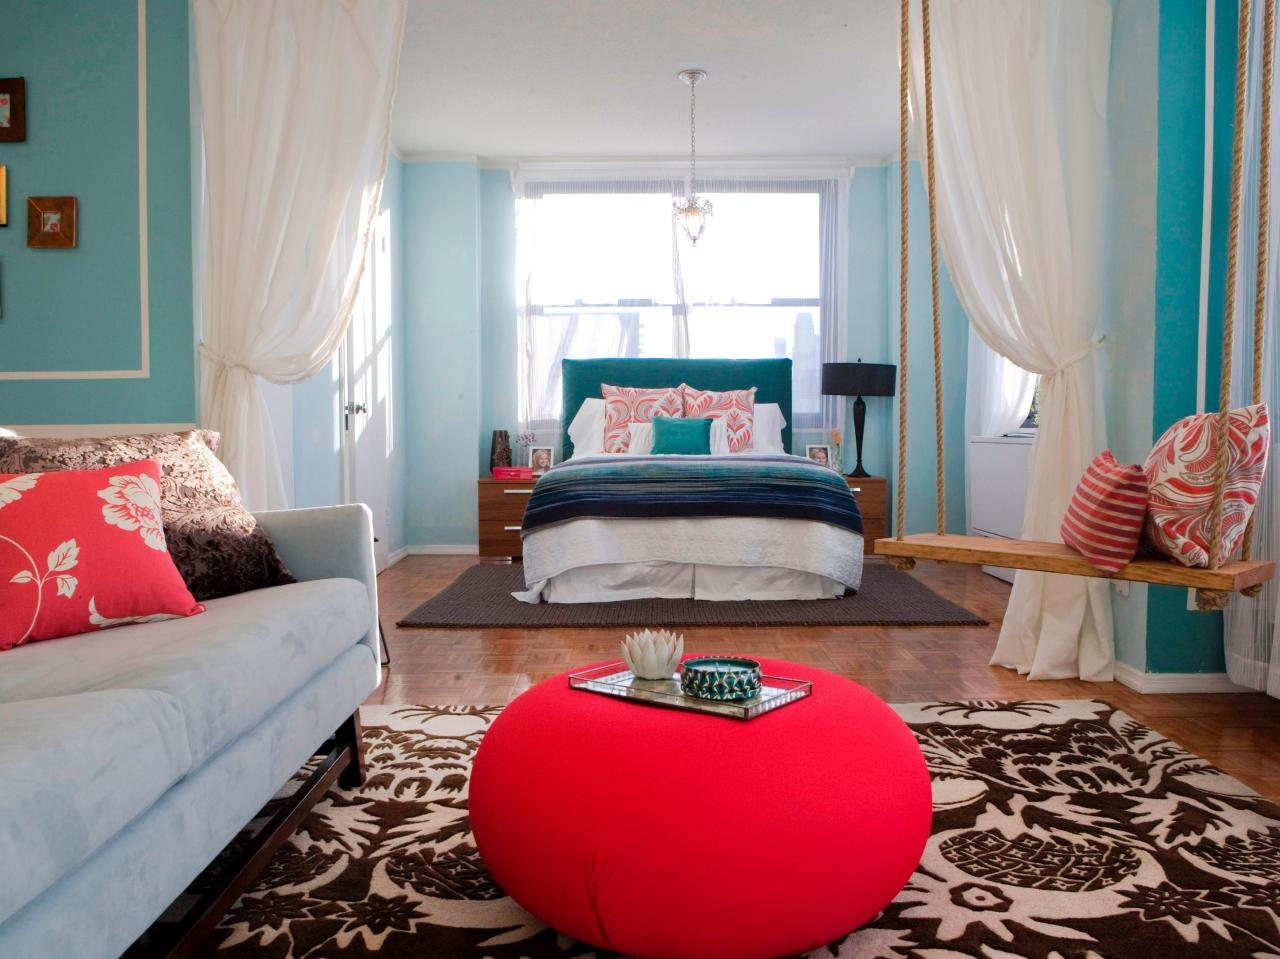 ... The Teen Bedroom Decor: Chic Accessory Design Ideas With Red Bench On  Nice Carpet